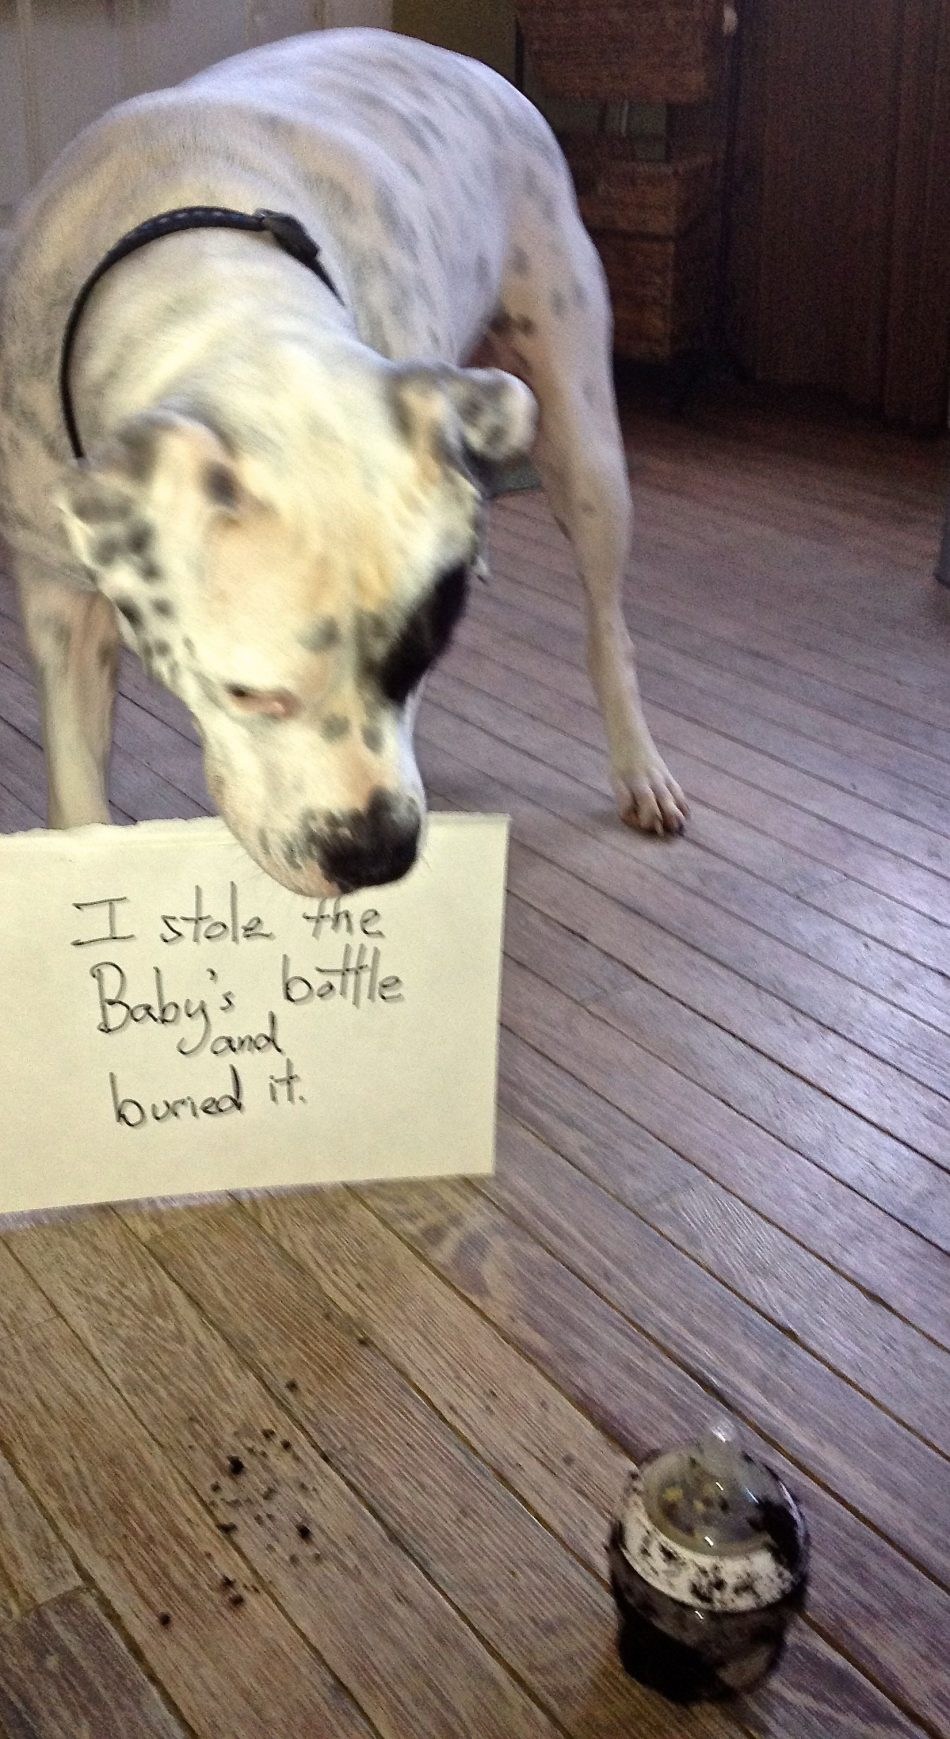 I stole and buried the baby's bottle